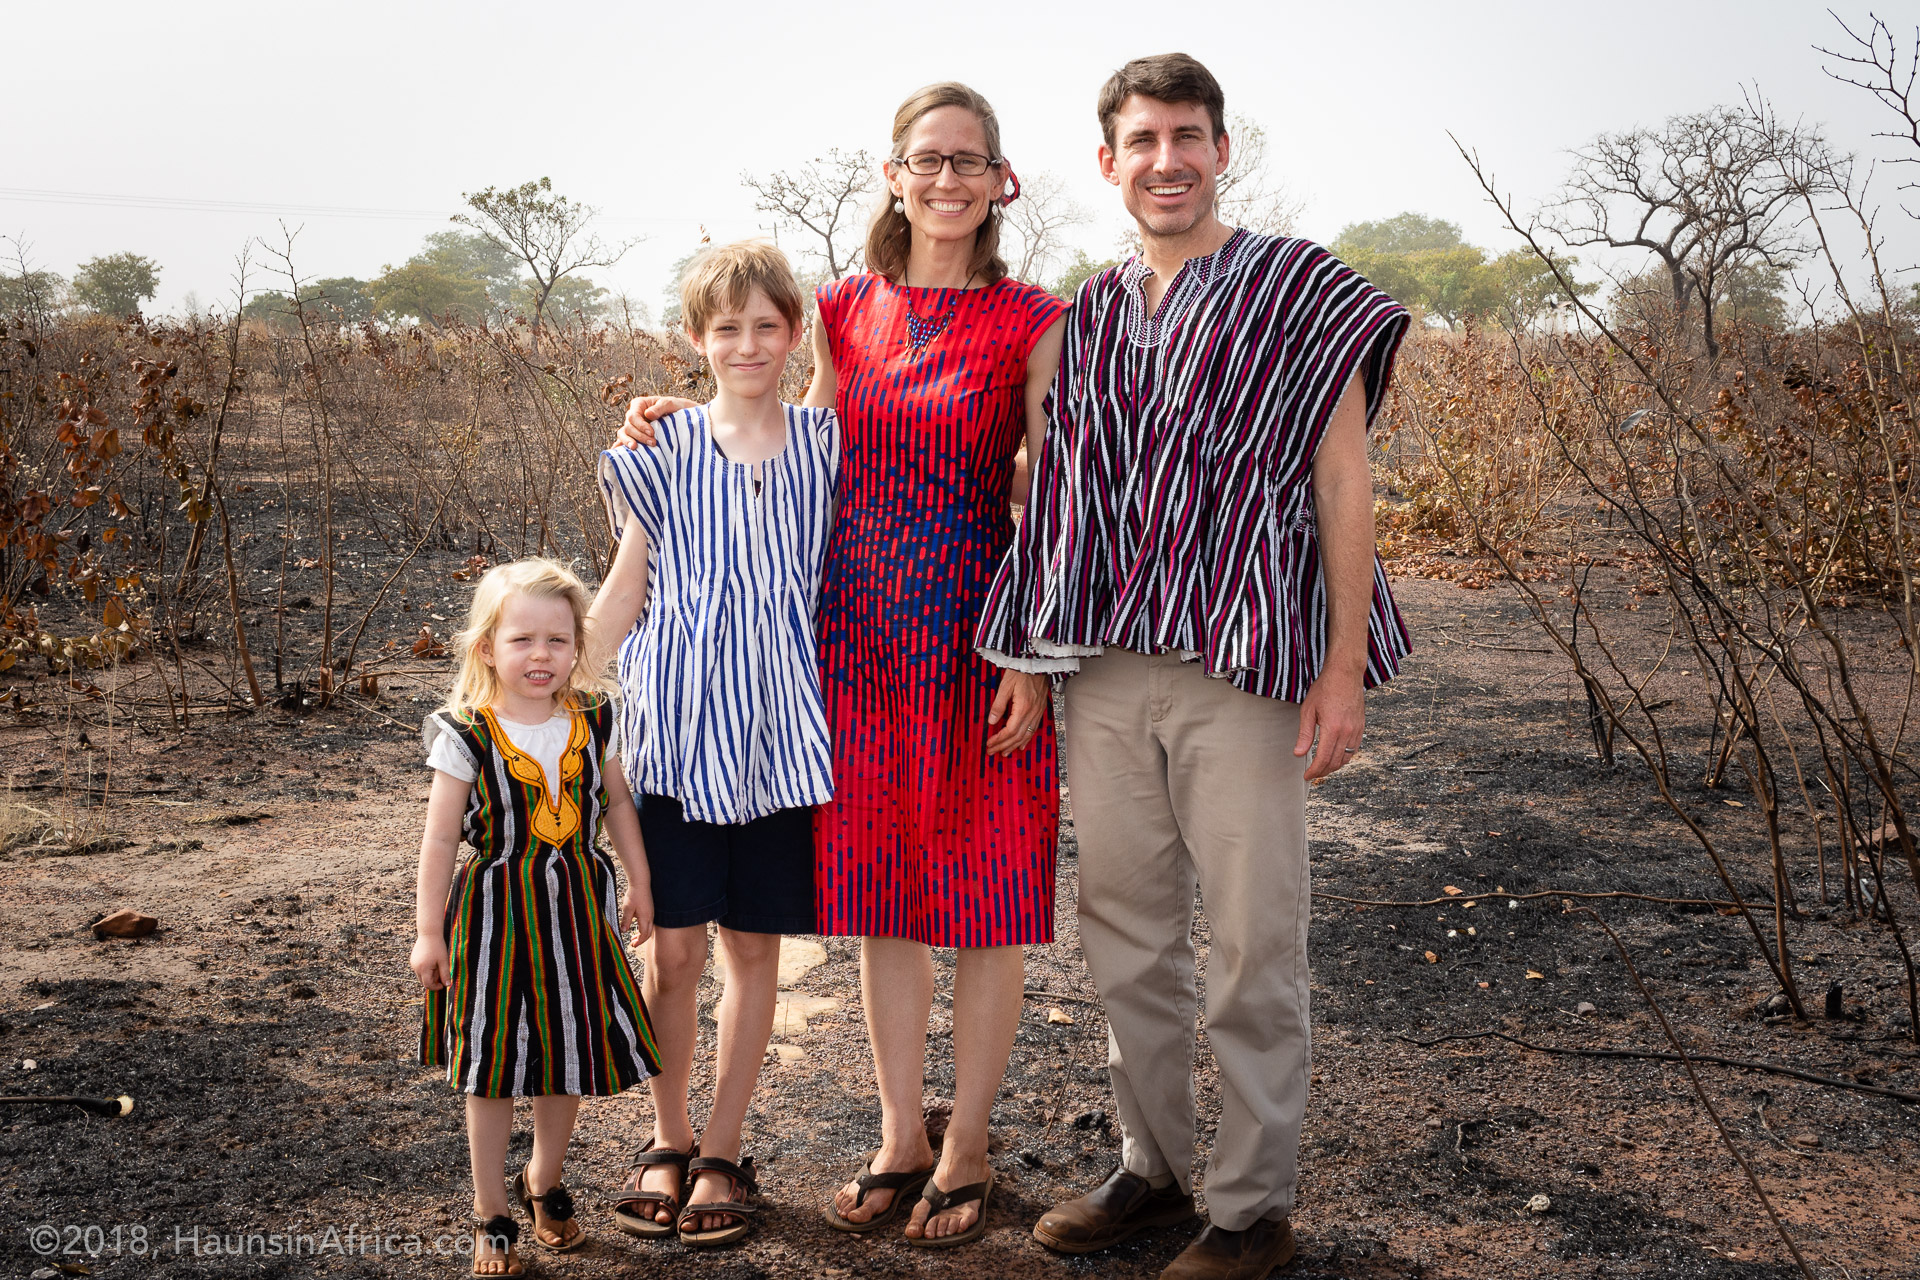 The Haun Family in northern Ghana on Christmas Day 2018.